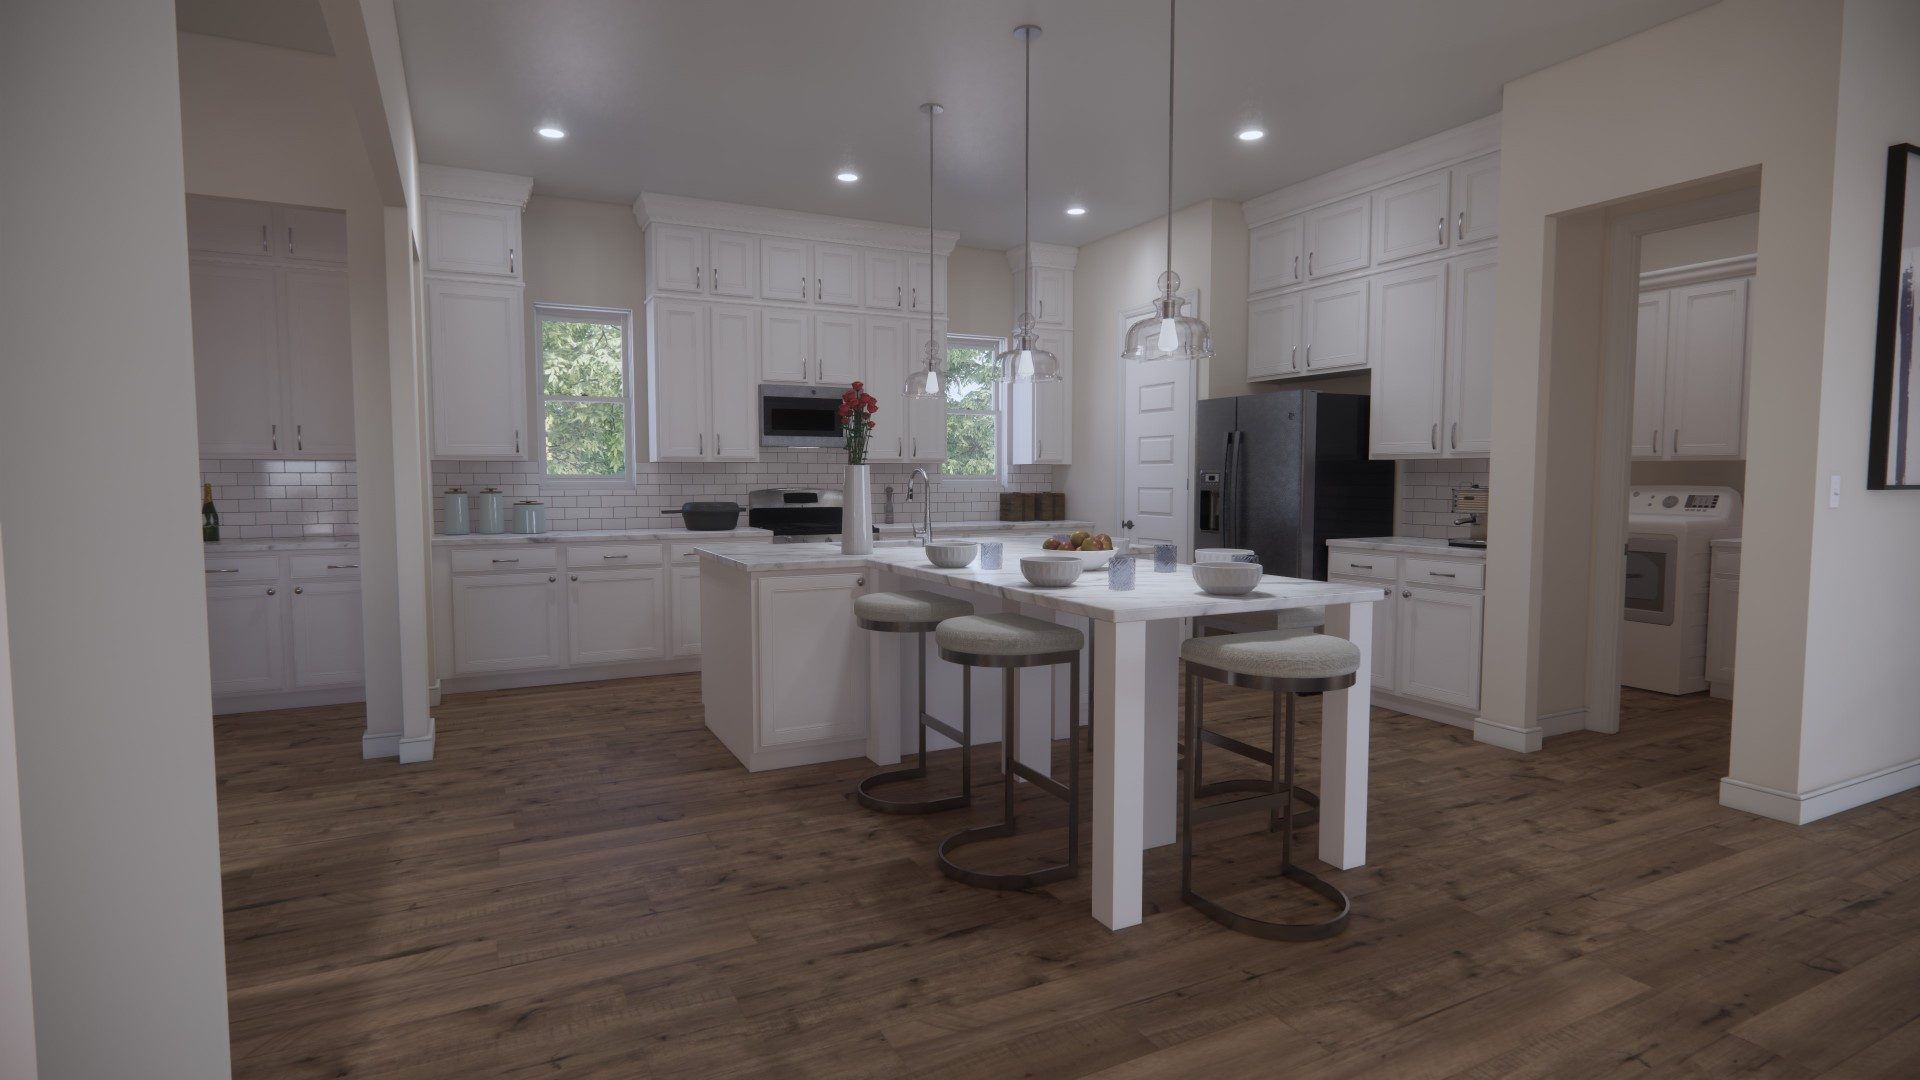 Kitchen featured in the Preserve By HHHunt Homes LLC in Richmond-Petersburg, VA